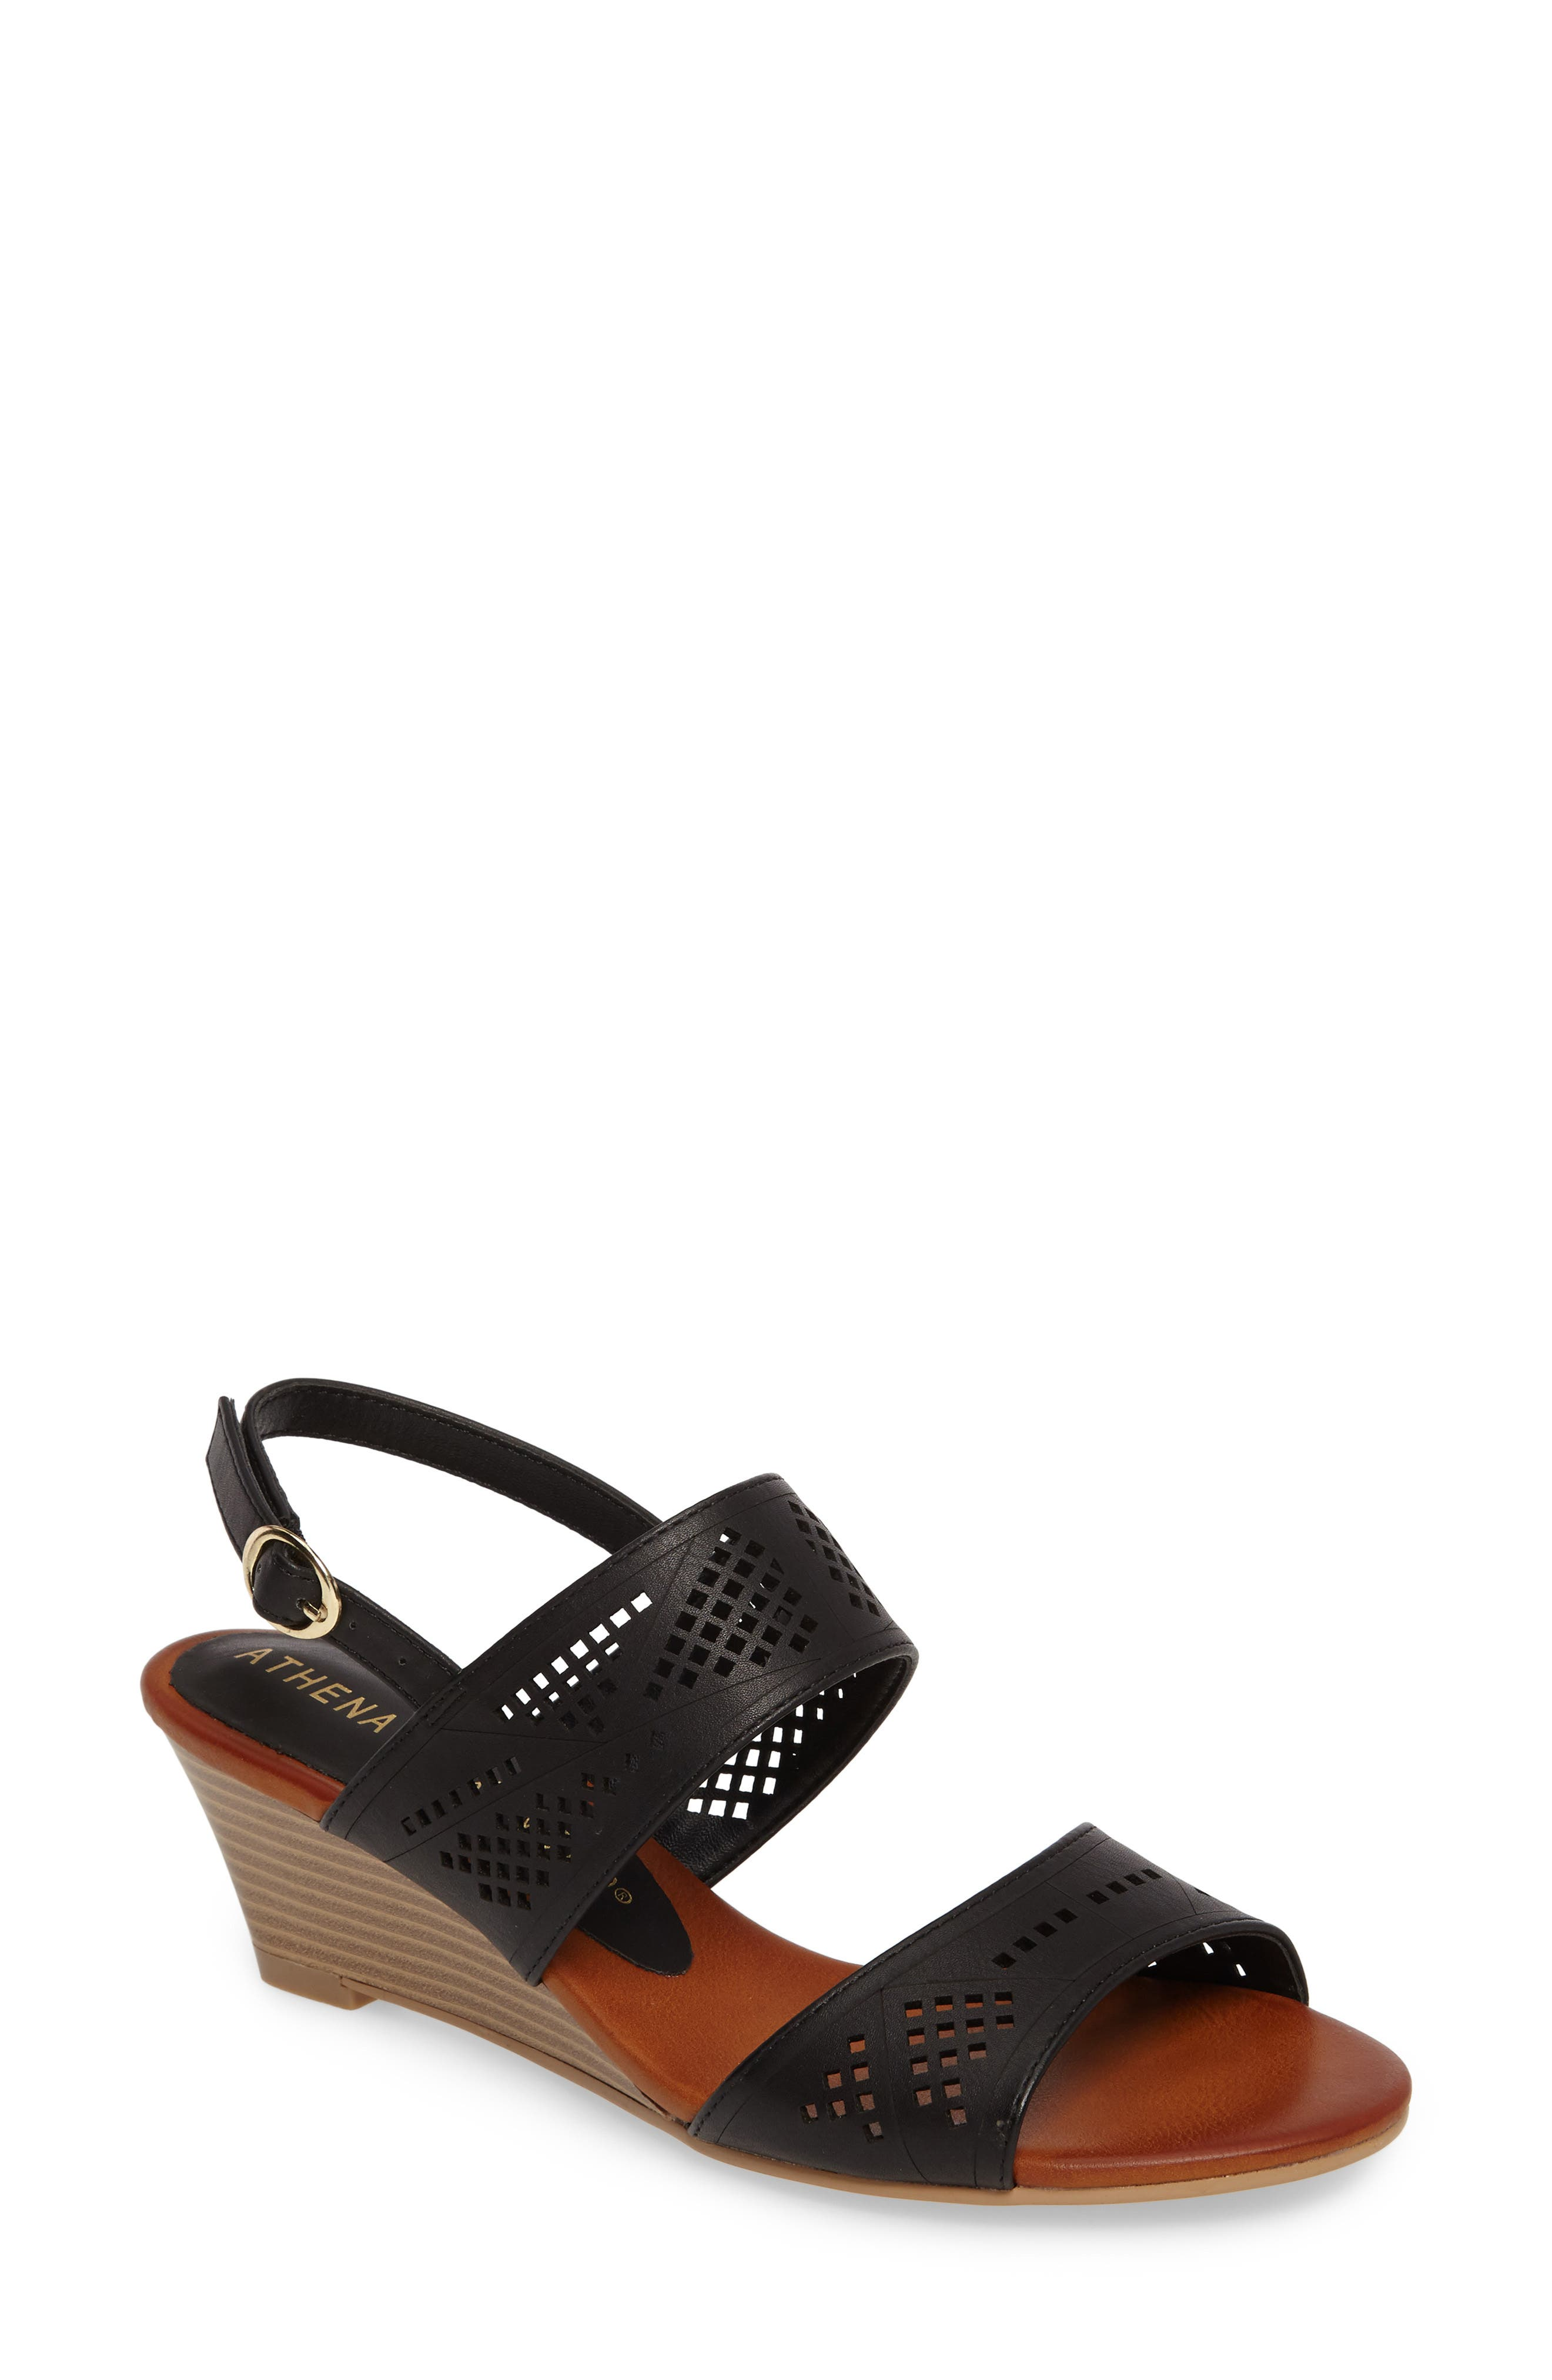 Alternate Image 1 Selected - Athena Alexander Sparce Perforated Wedge Sandal (Women)